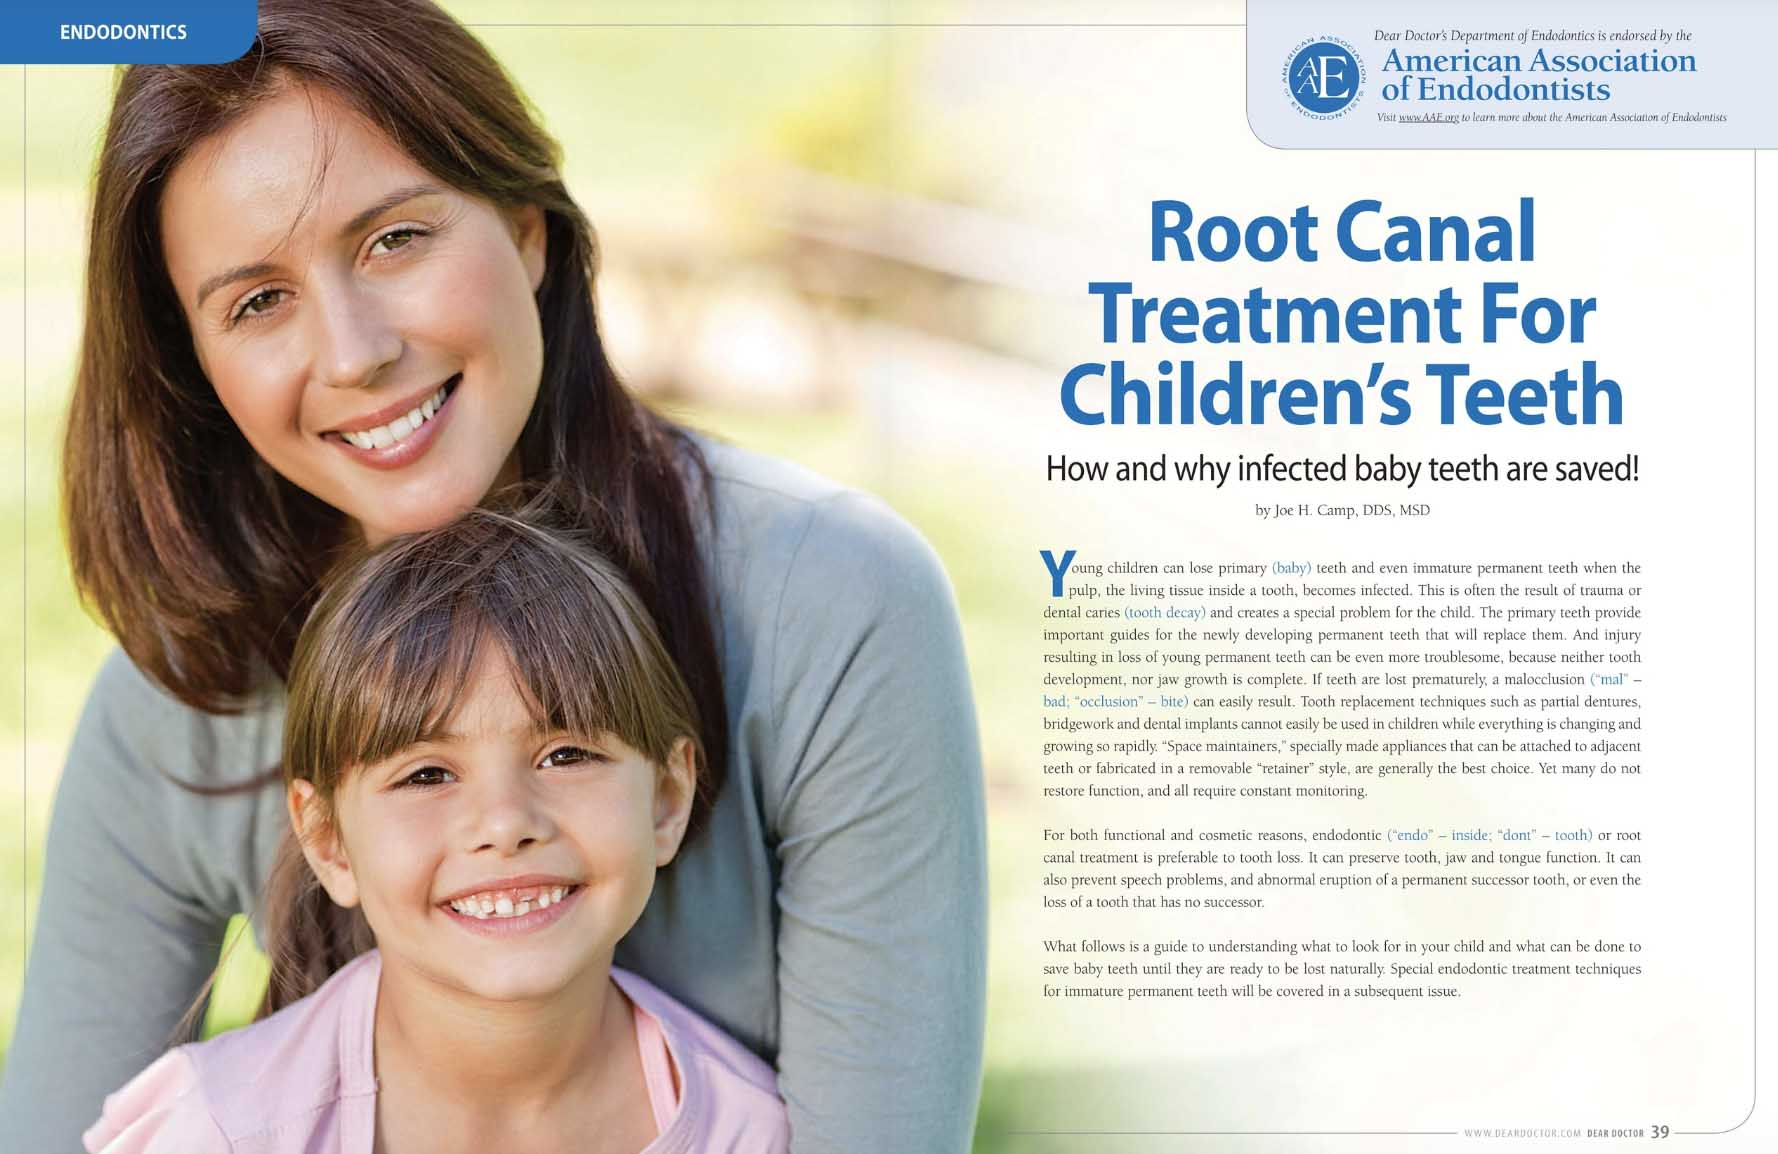 Root Canal Treatment for Children's Teeth